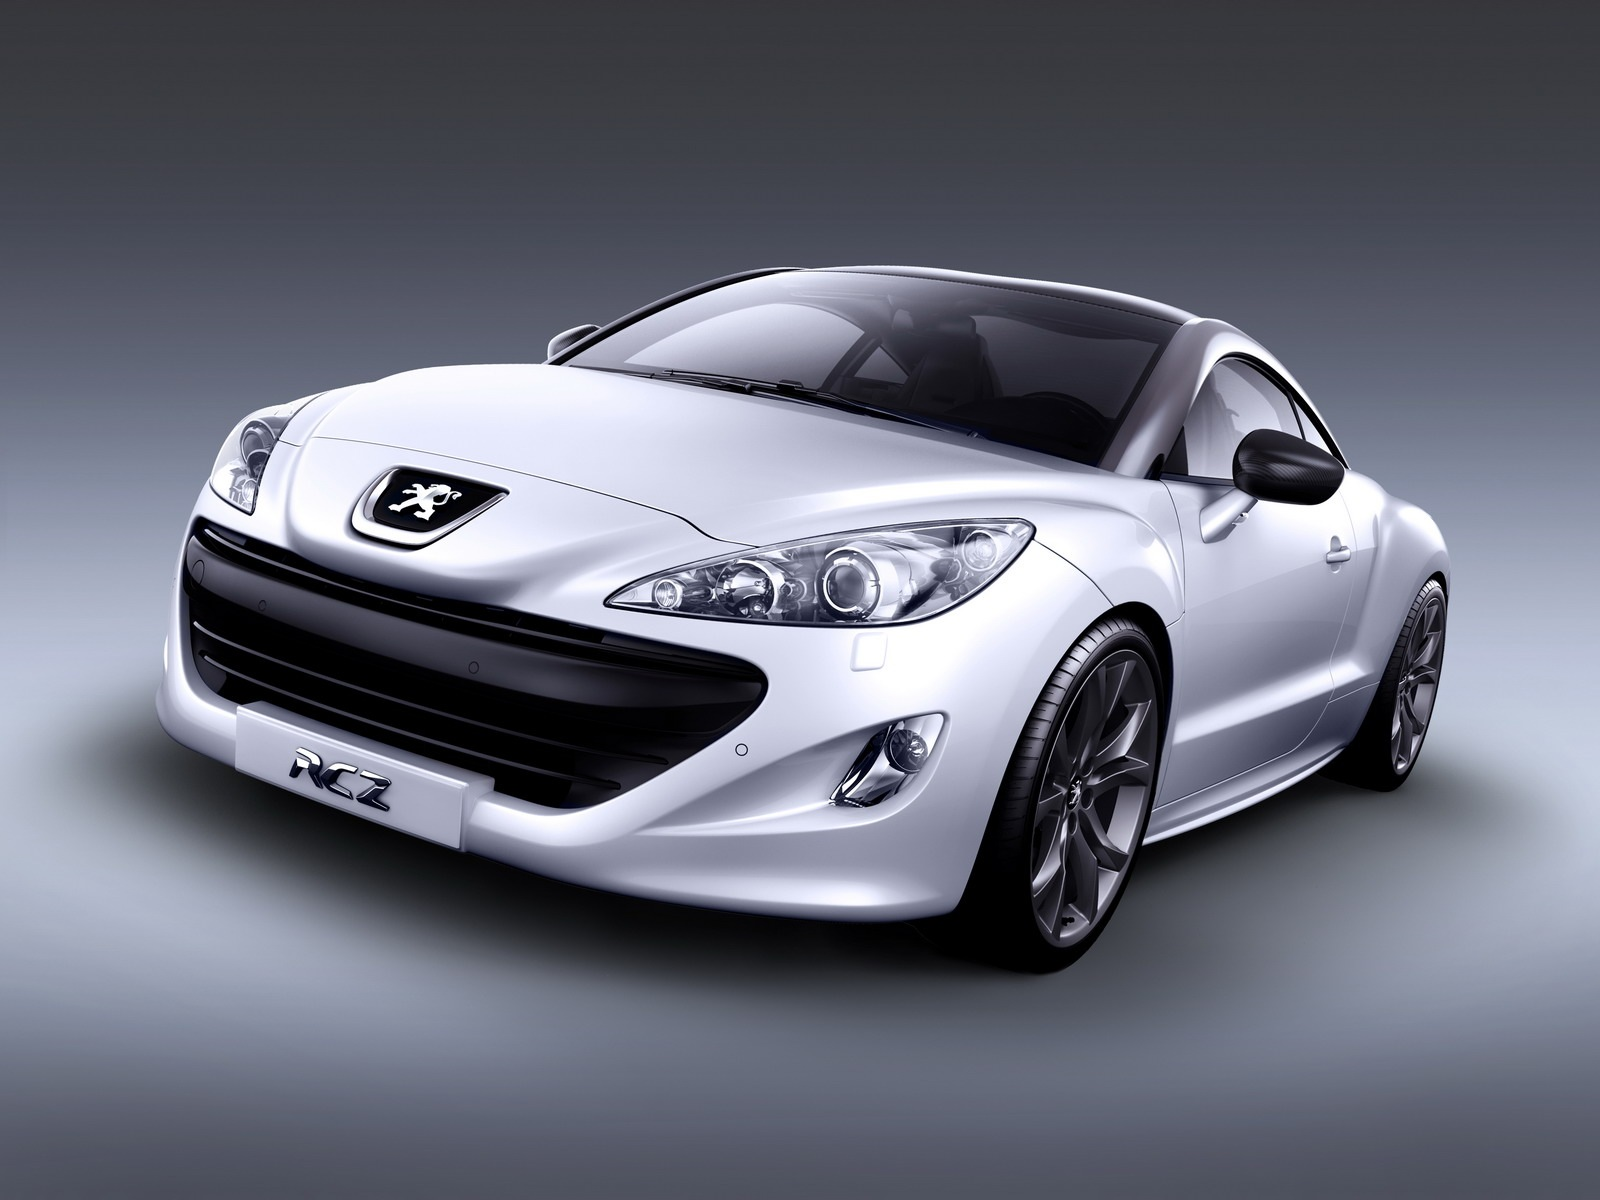 Peugeot RCZ Cars Specification Wallpapers HD